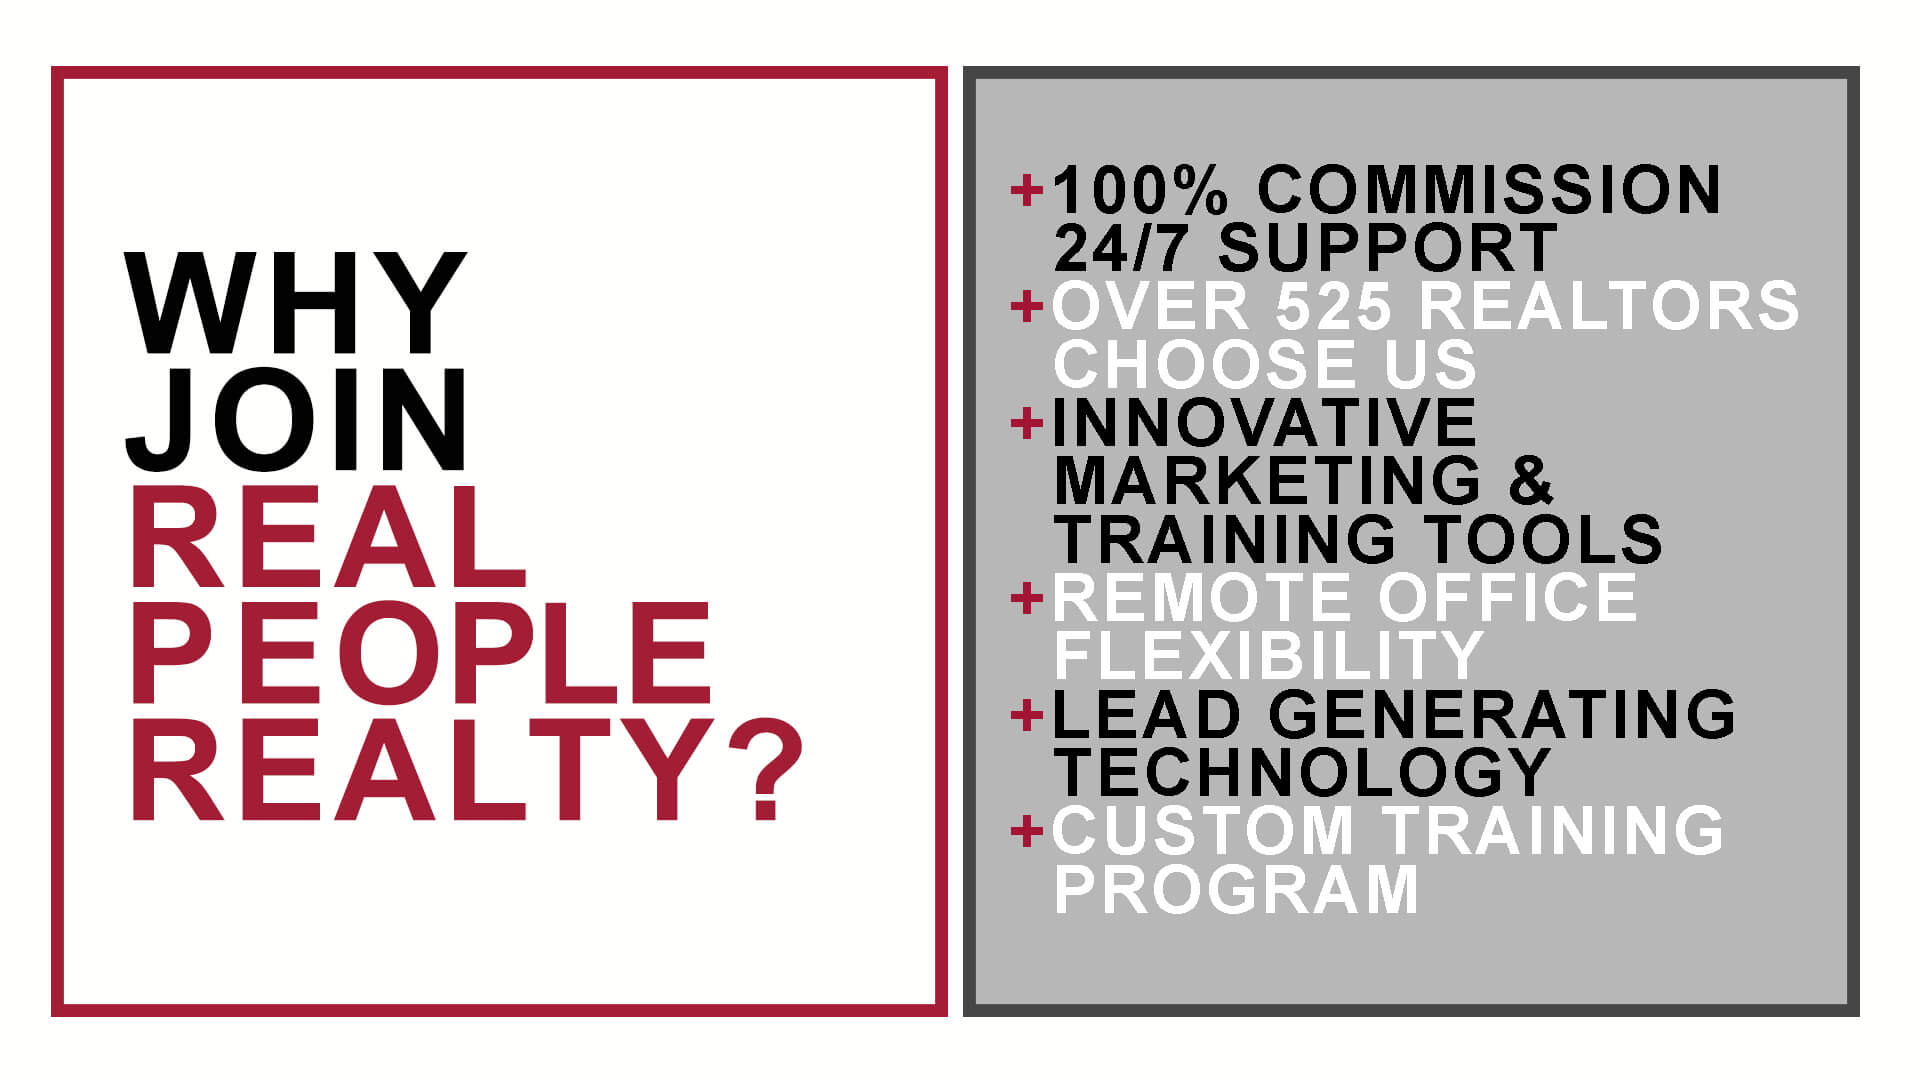 Why Join Real People Realty List 100% Commission